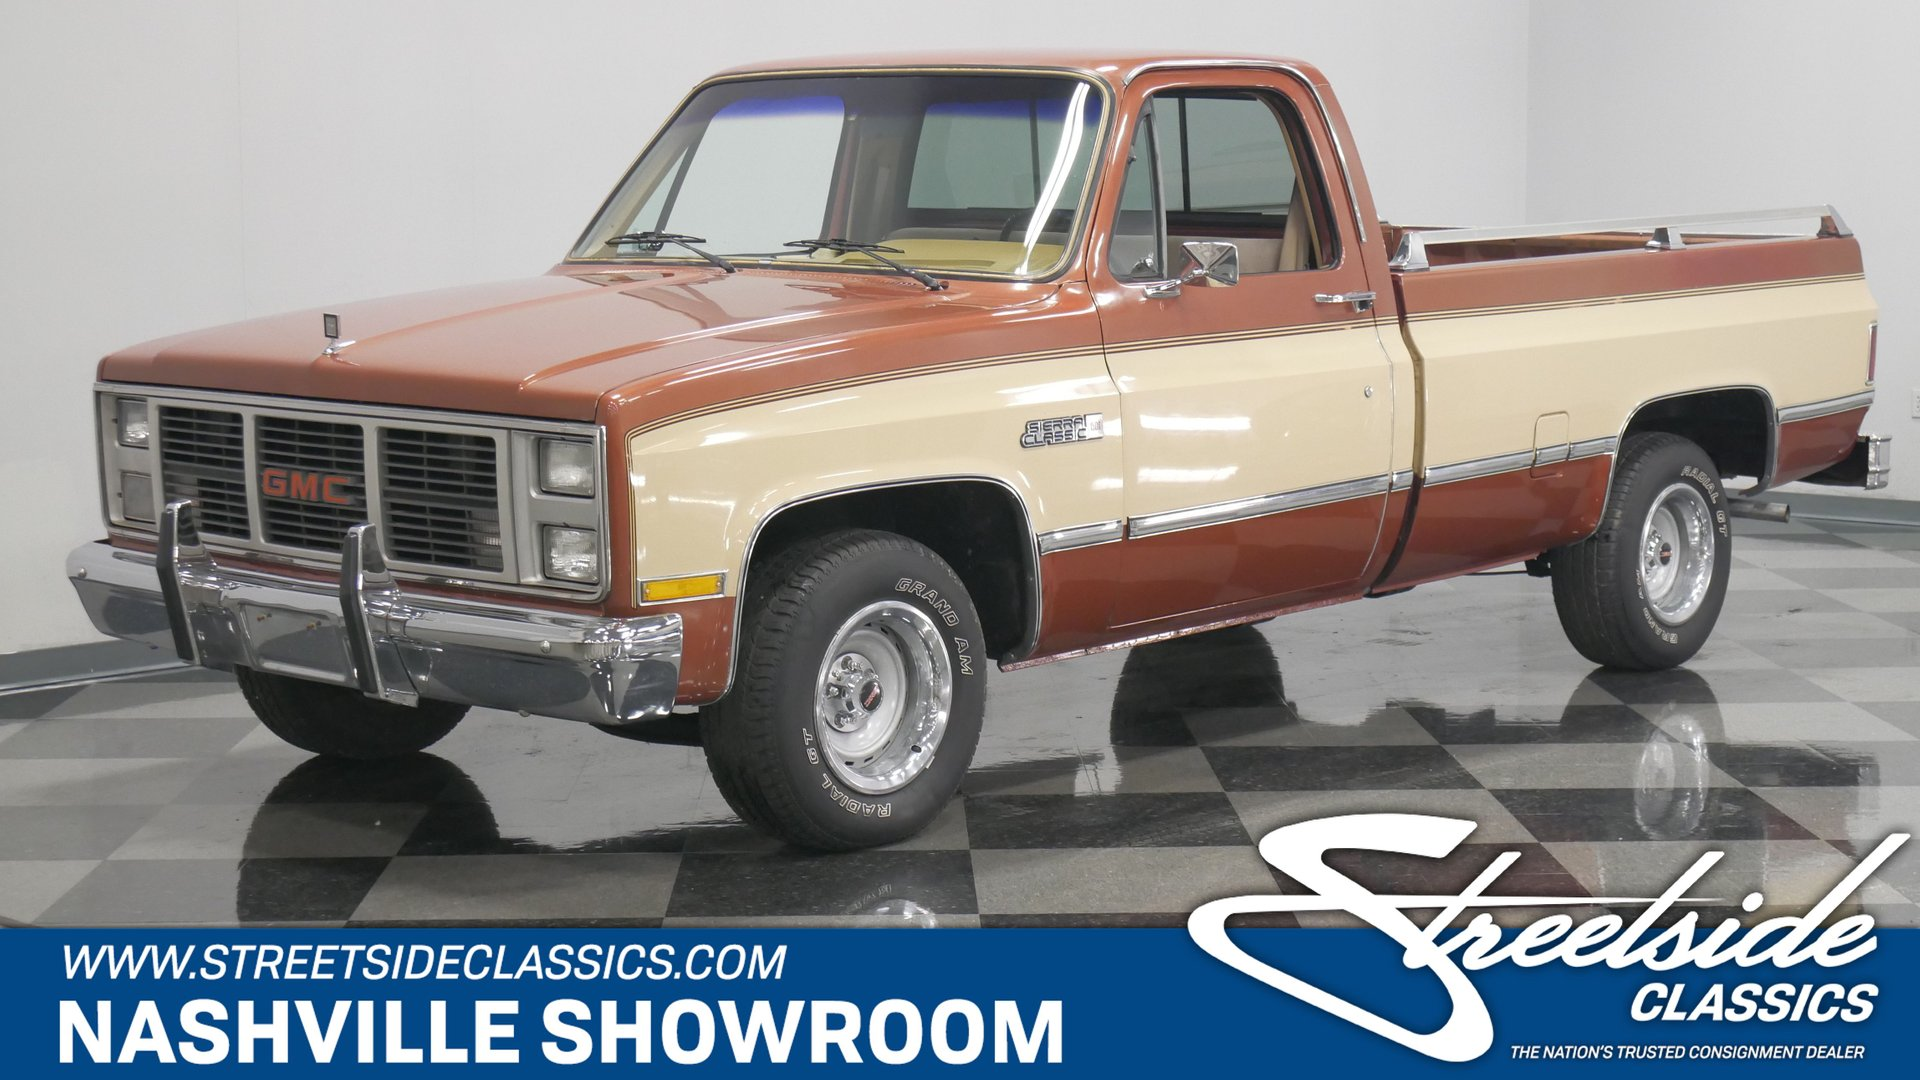 1986 Gmc 1500 Classic Cars For Sale Streetside Classics The Nation S 1 Consignment Dealer